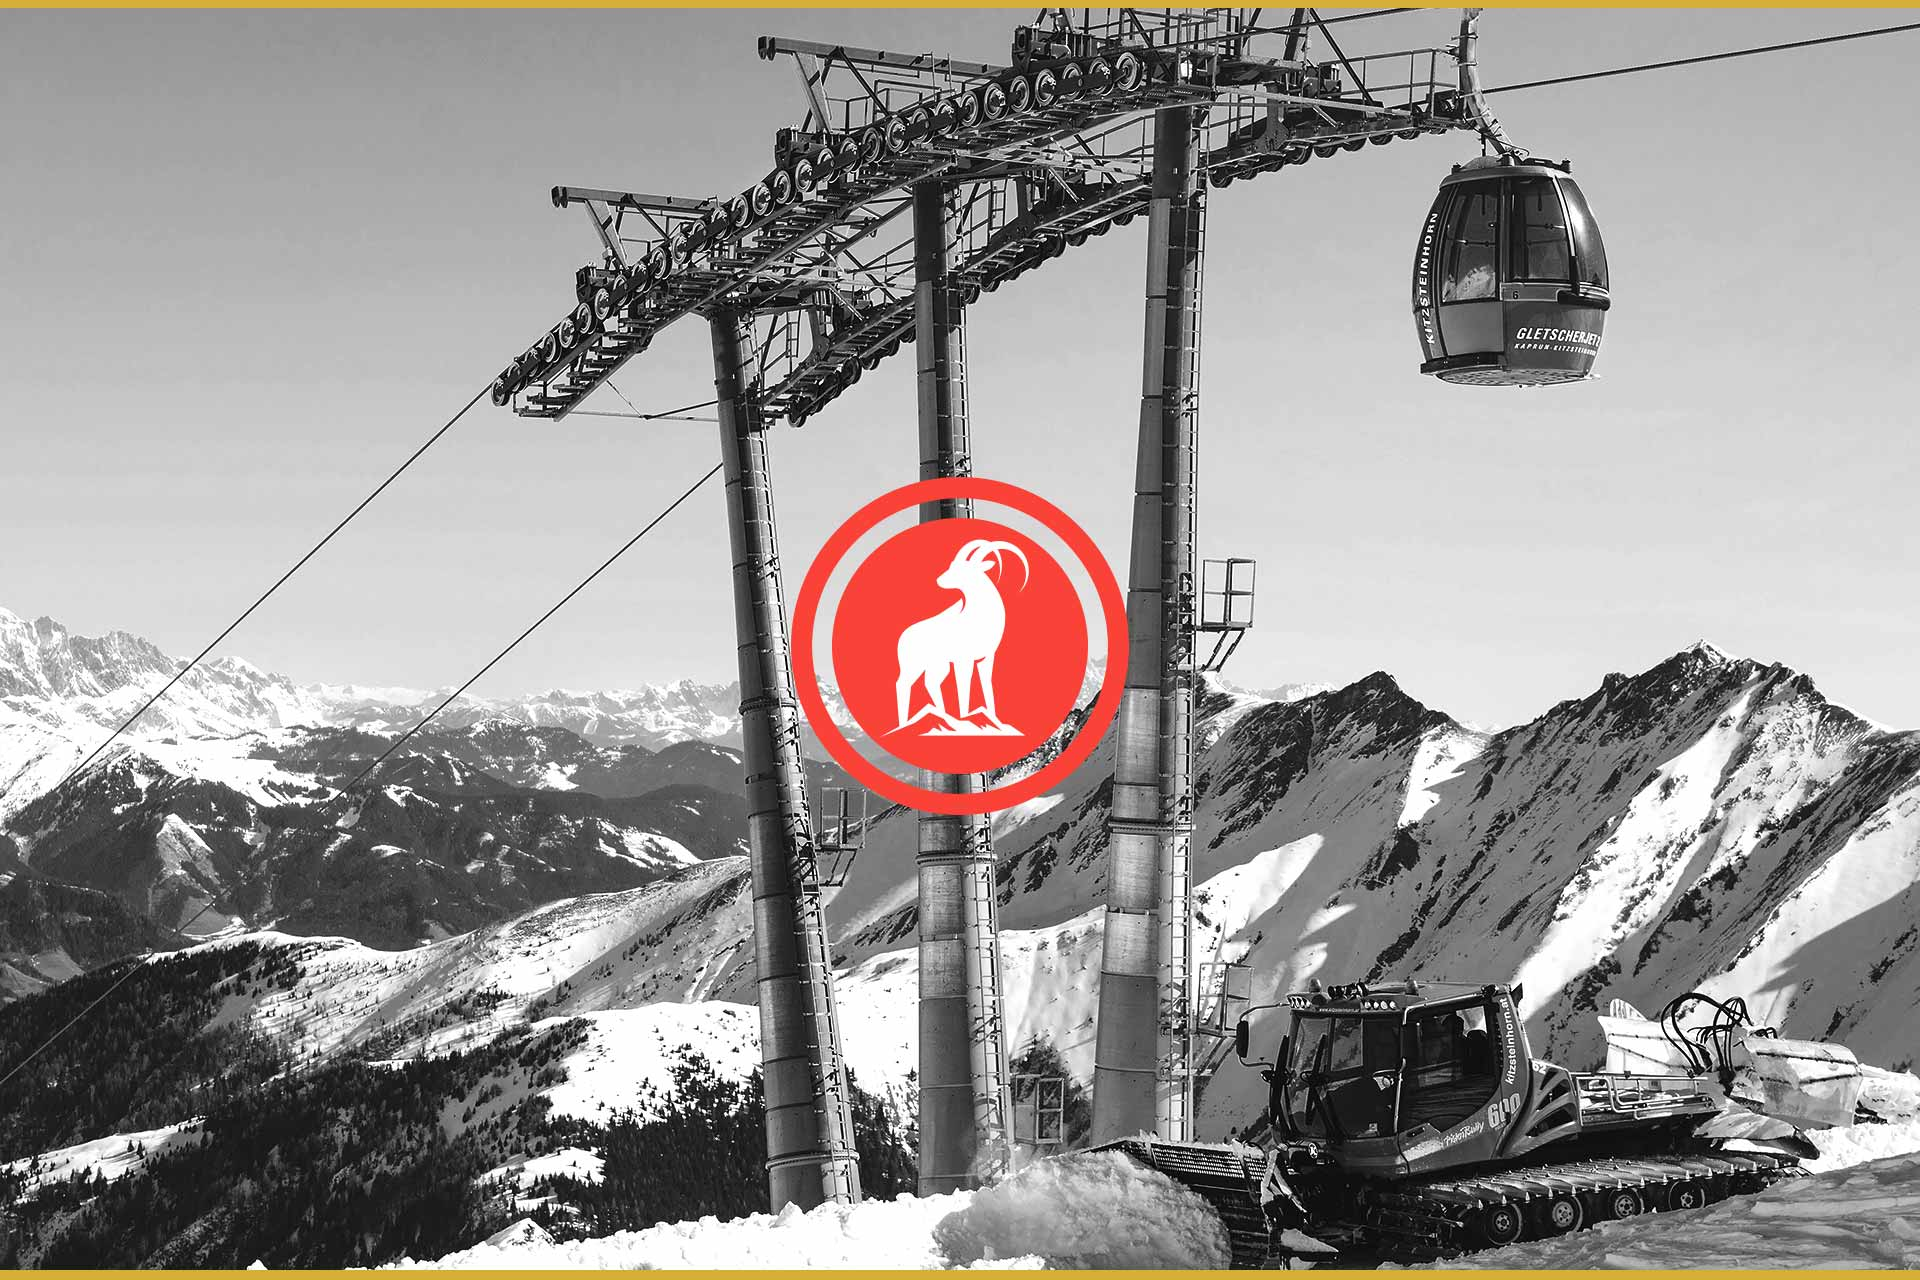 Nordeau ski lifestyle brand logo in front of black and white ski mountains